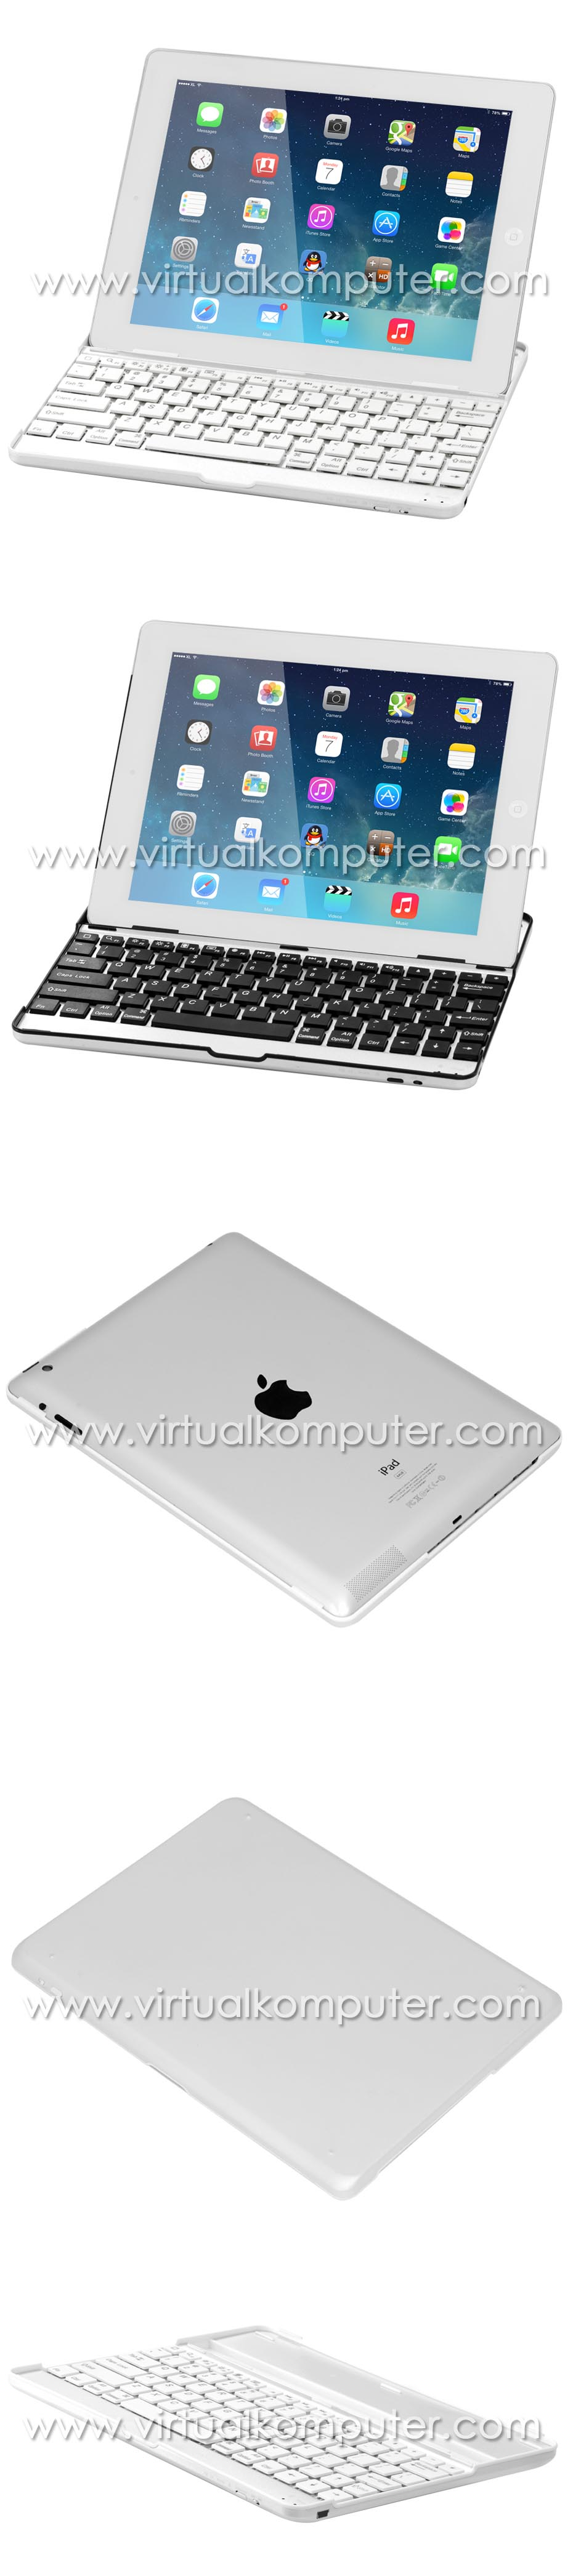 Ultra Slim Keyboard for iPad 2, 3, 4 Overview